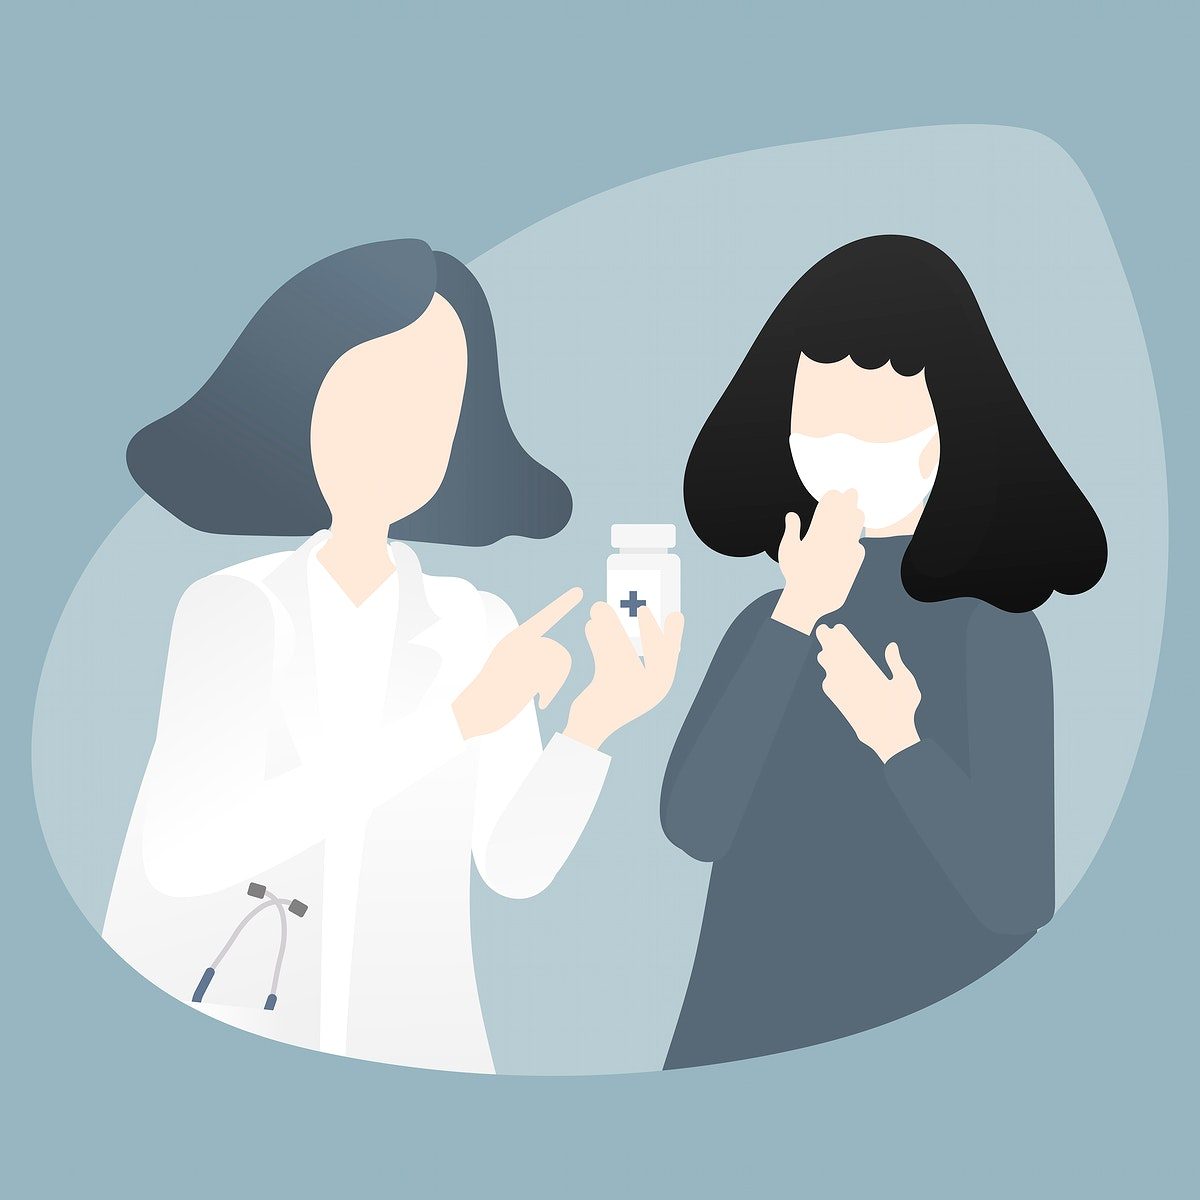 Doctor giving advice and medicine to patient characters vector